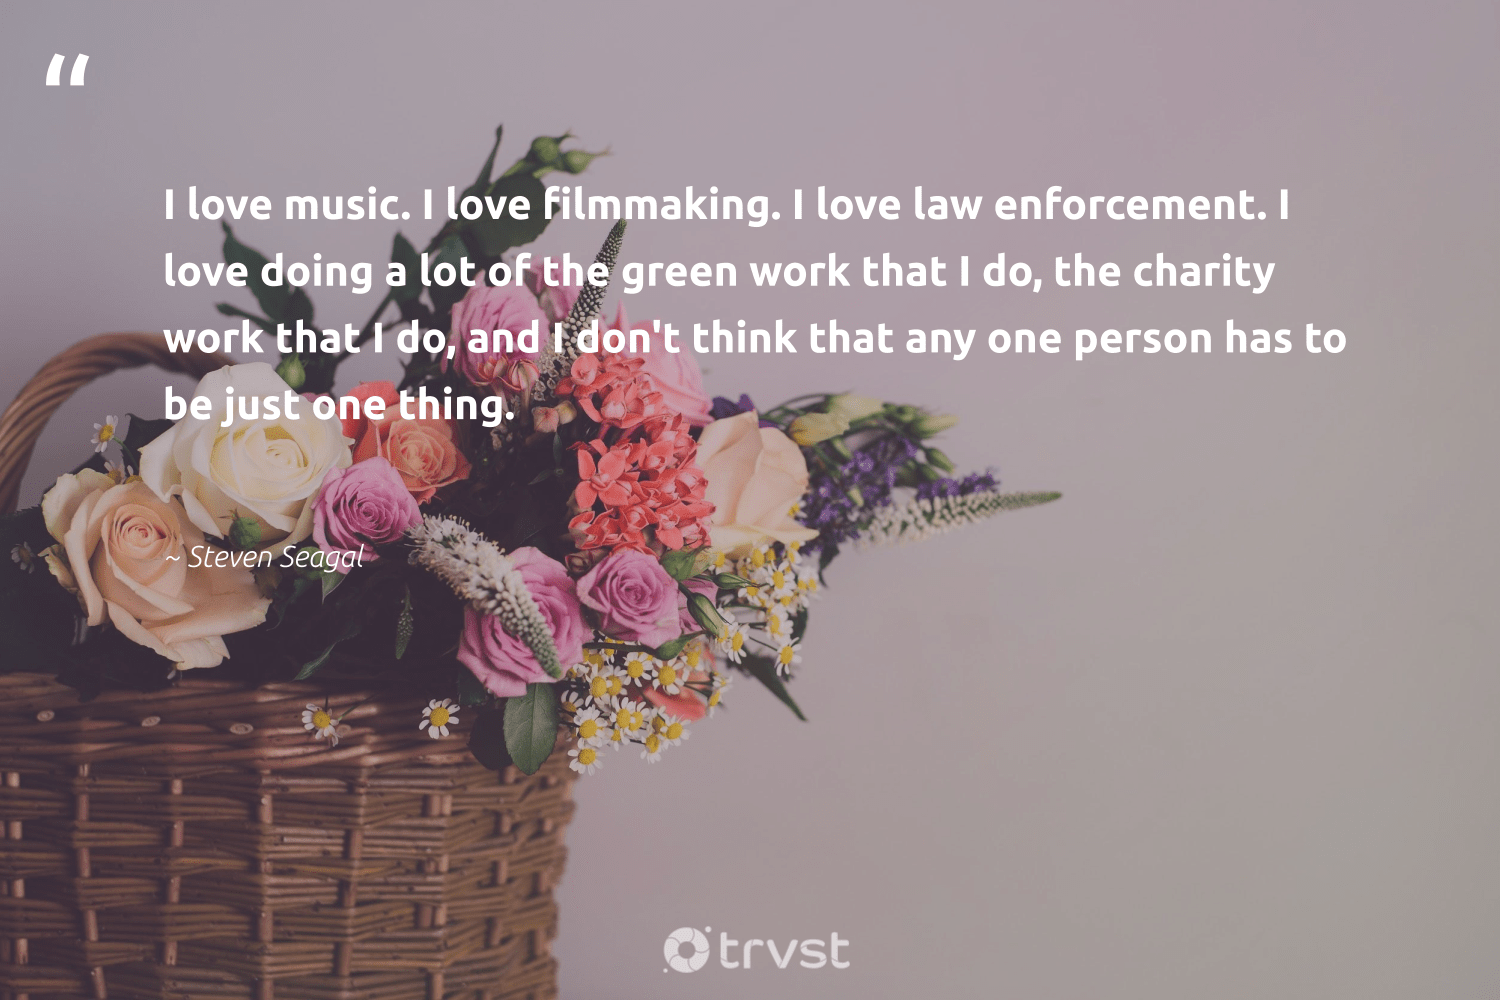 """""""I love music. I love filmmaking. I love law enforcement. I love doing a lot of the green work that I do, the charity work that I do, and I don't think that any one person has to be just one thing.""""  - Steven Seagal #trvst #quotes #love #green #giveback #bethechange #betterplanet #changetheworld #makeadifference #thinkgreen #socialchange #ecoconscious"""